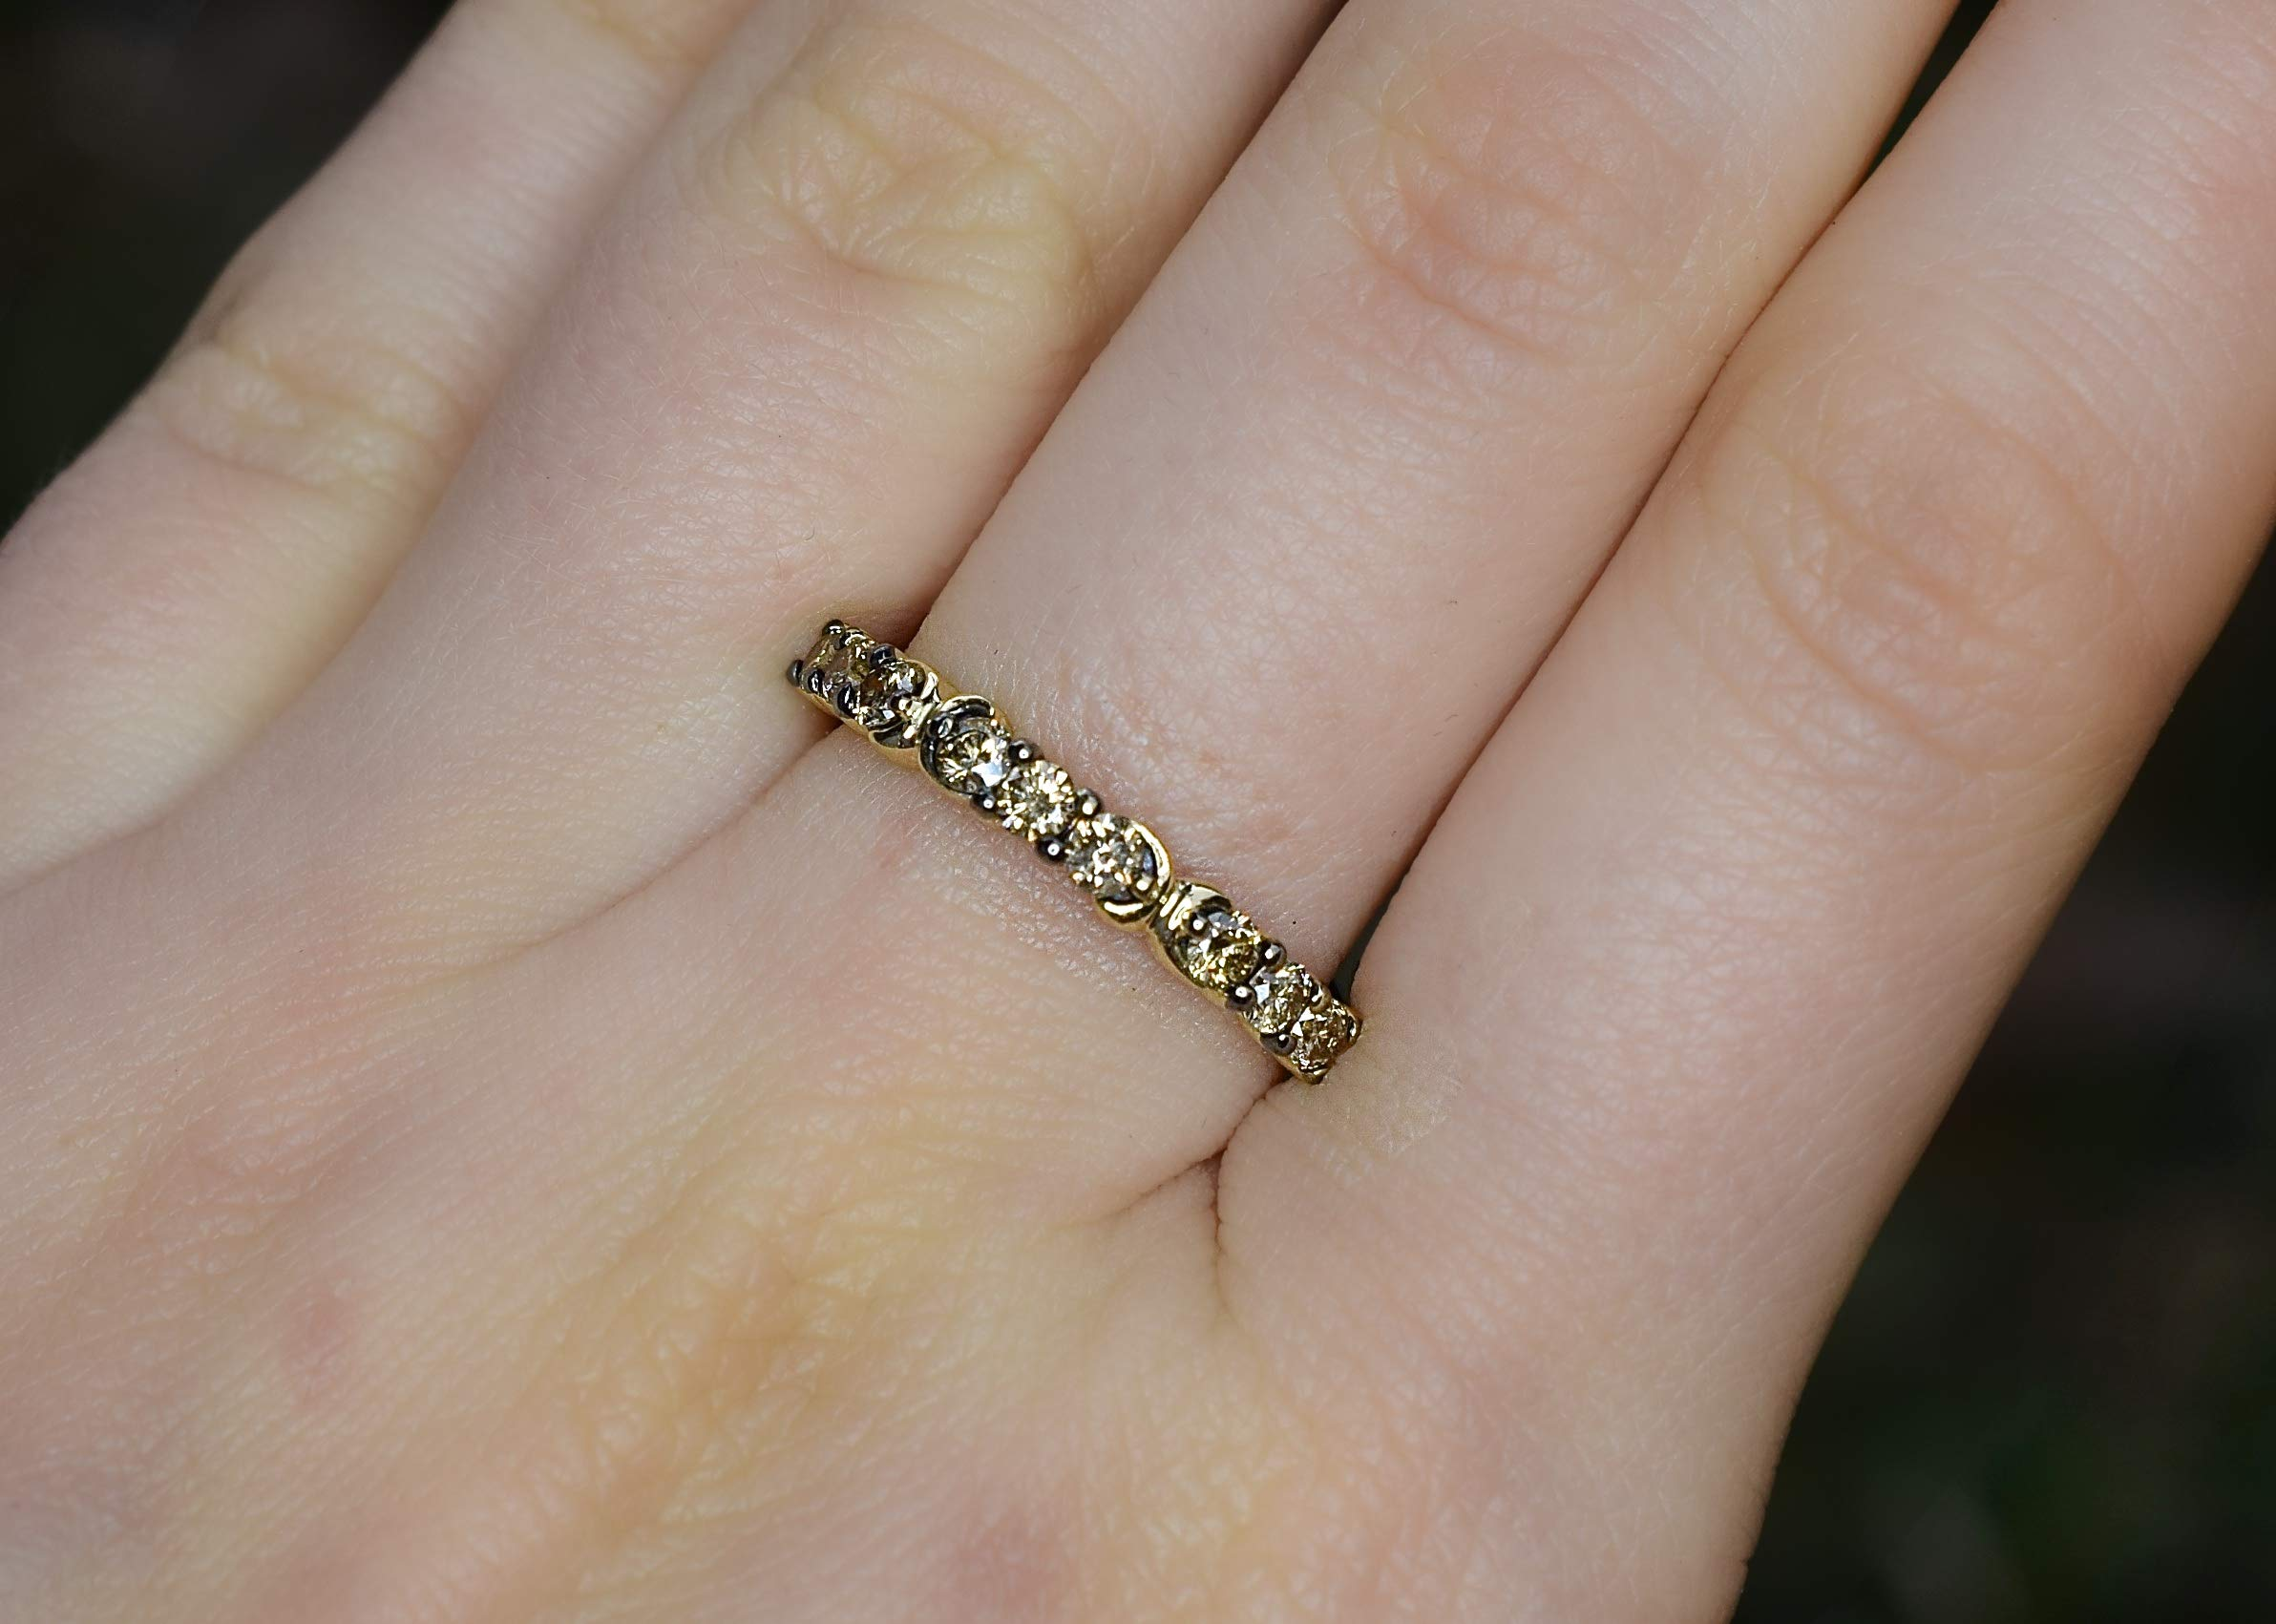 LeVian Ring 1/2 ct Chocolate Diamonds Band 14K Yellow Gold Size 7 by LE VIAN (Image #2)